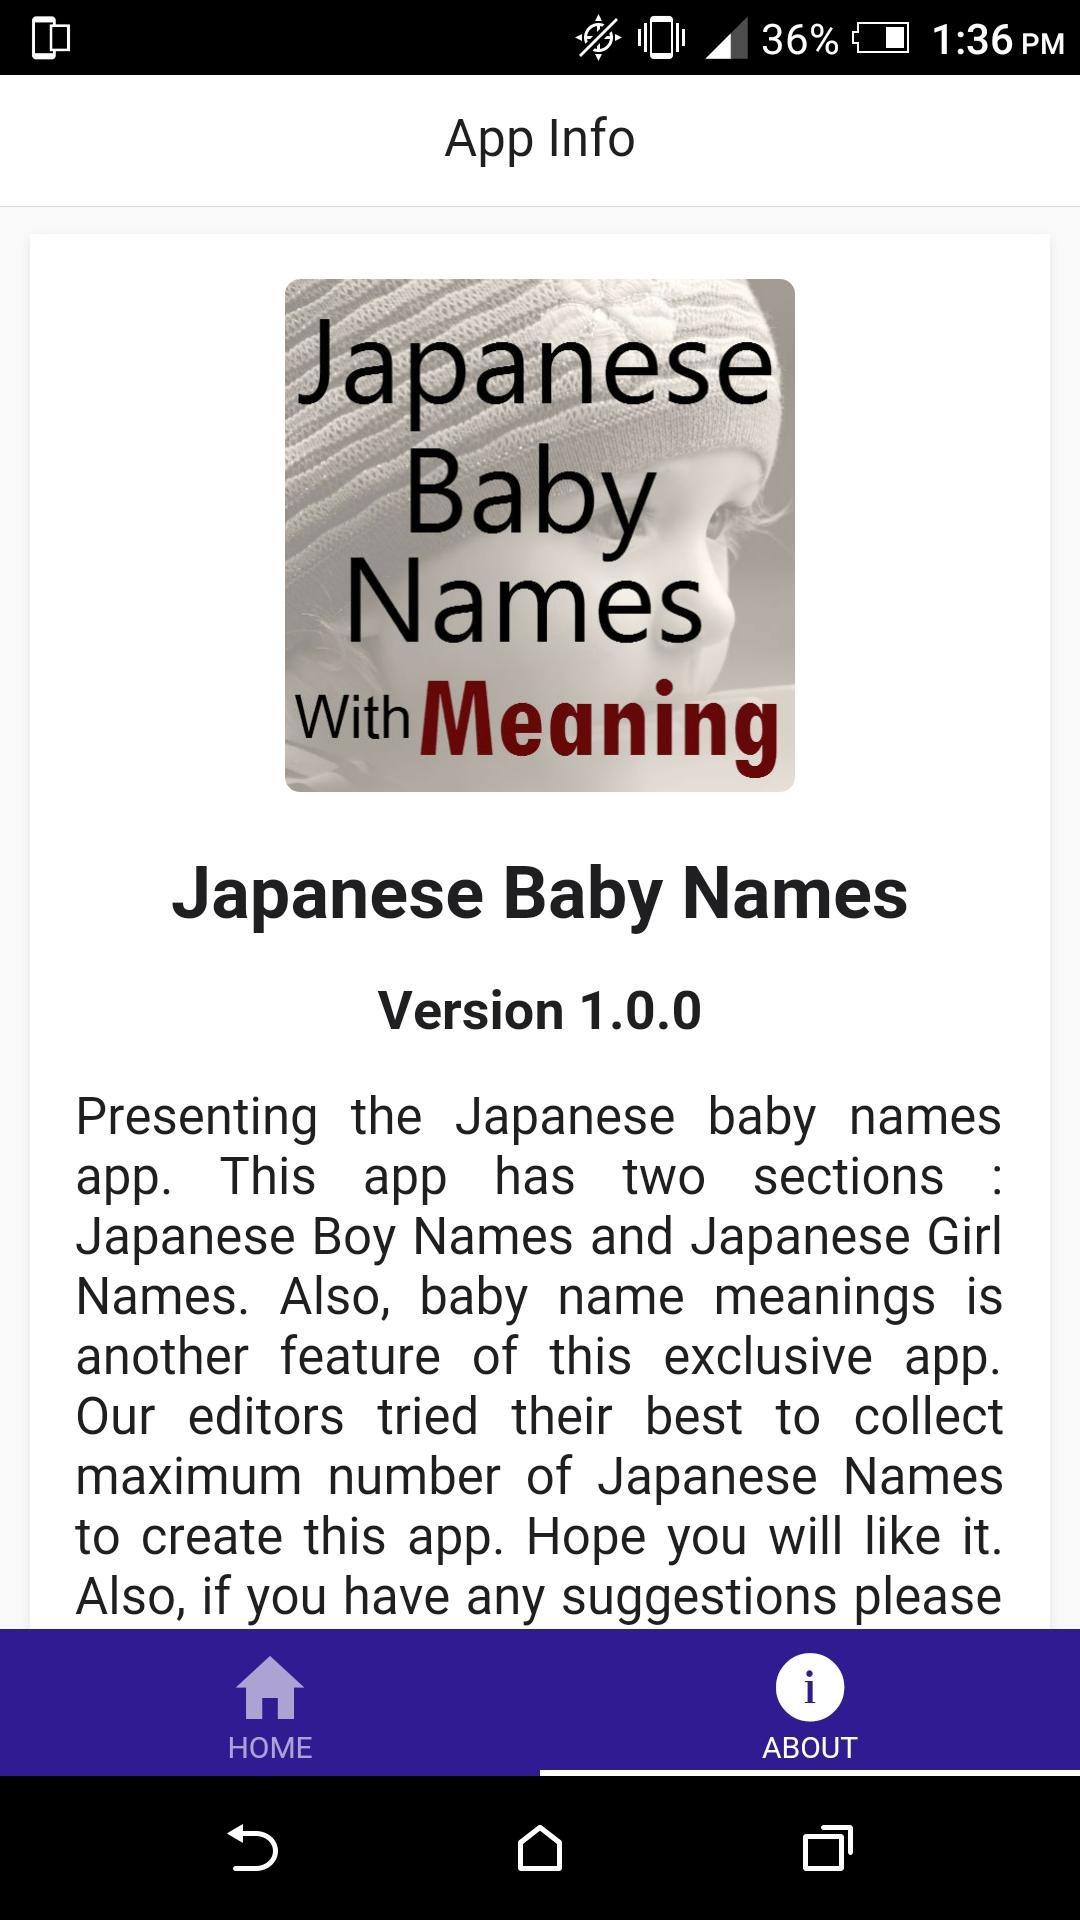 Japanese Baby Names for Android - APK Download